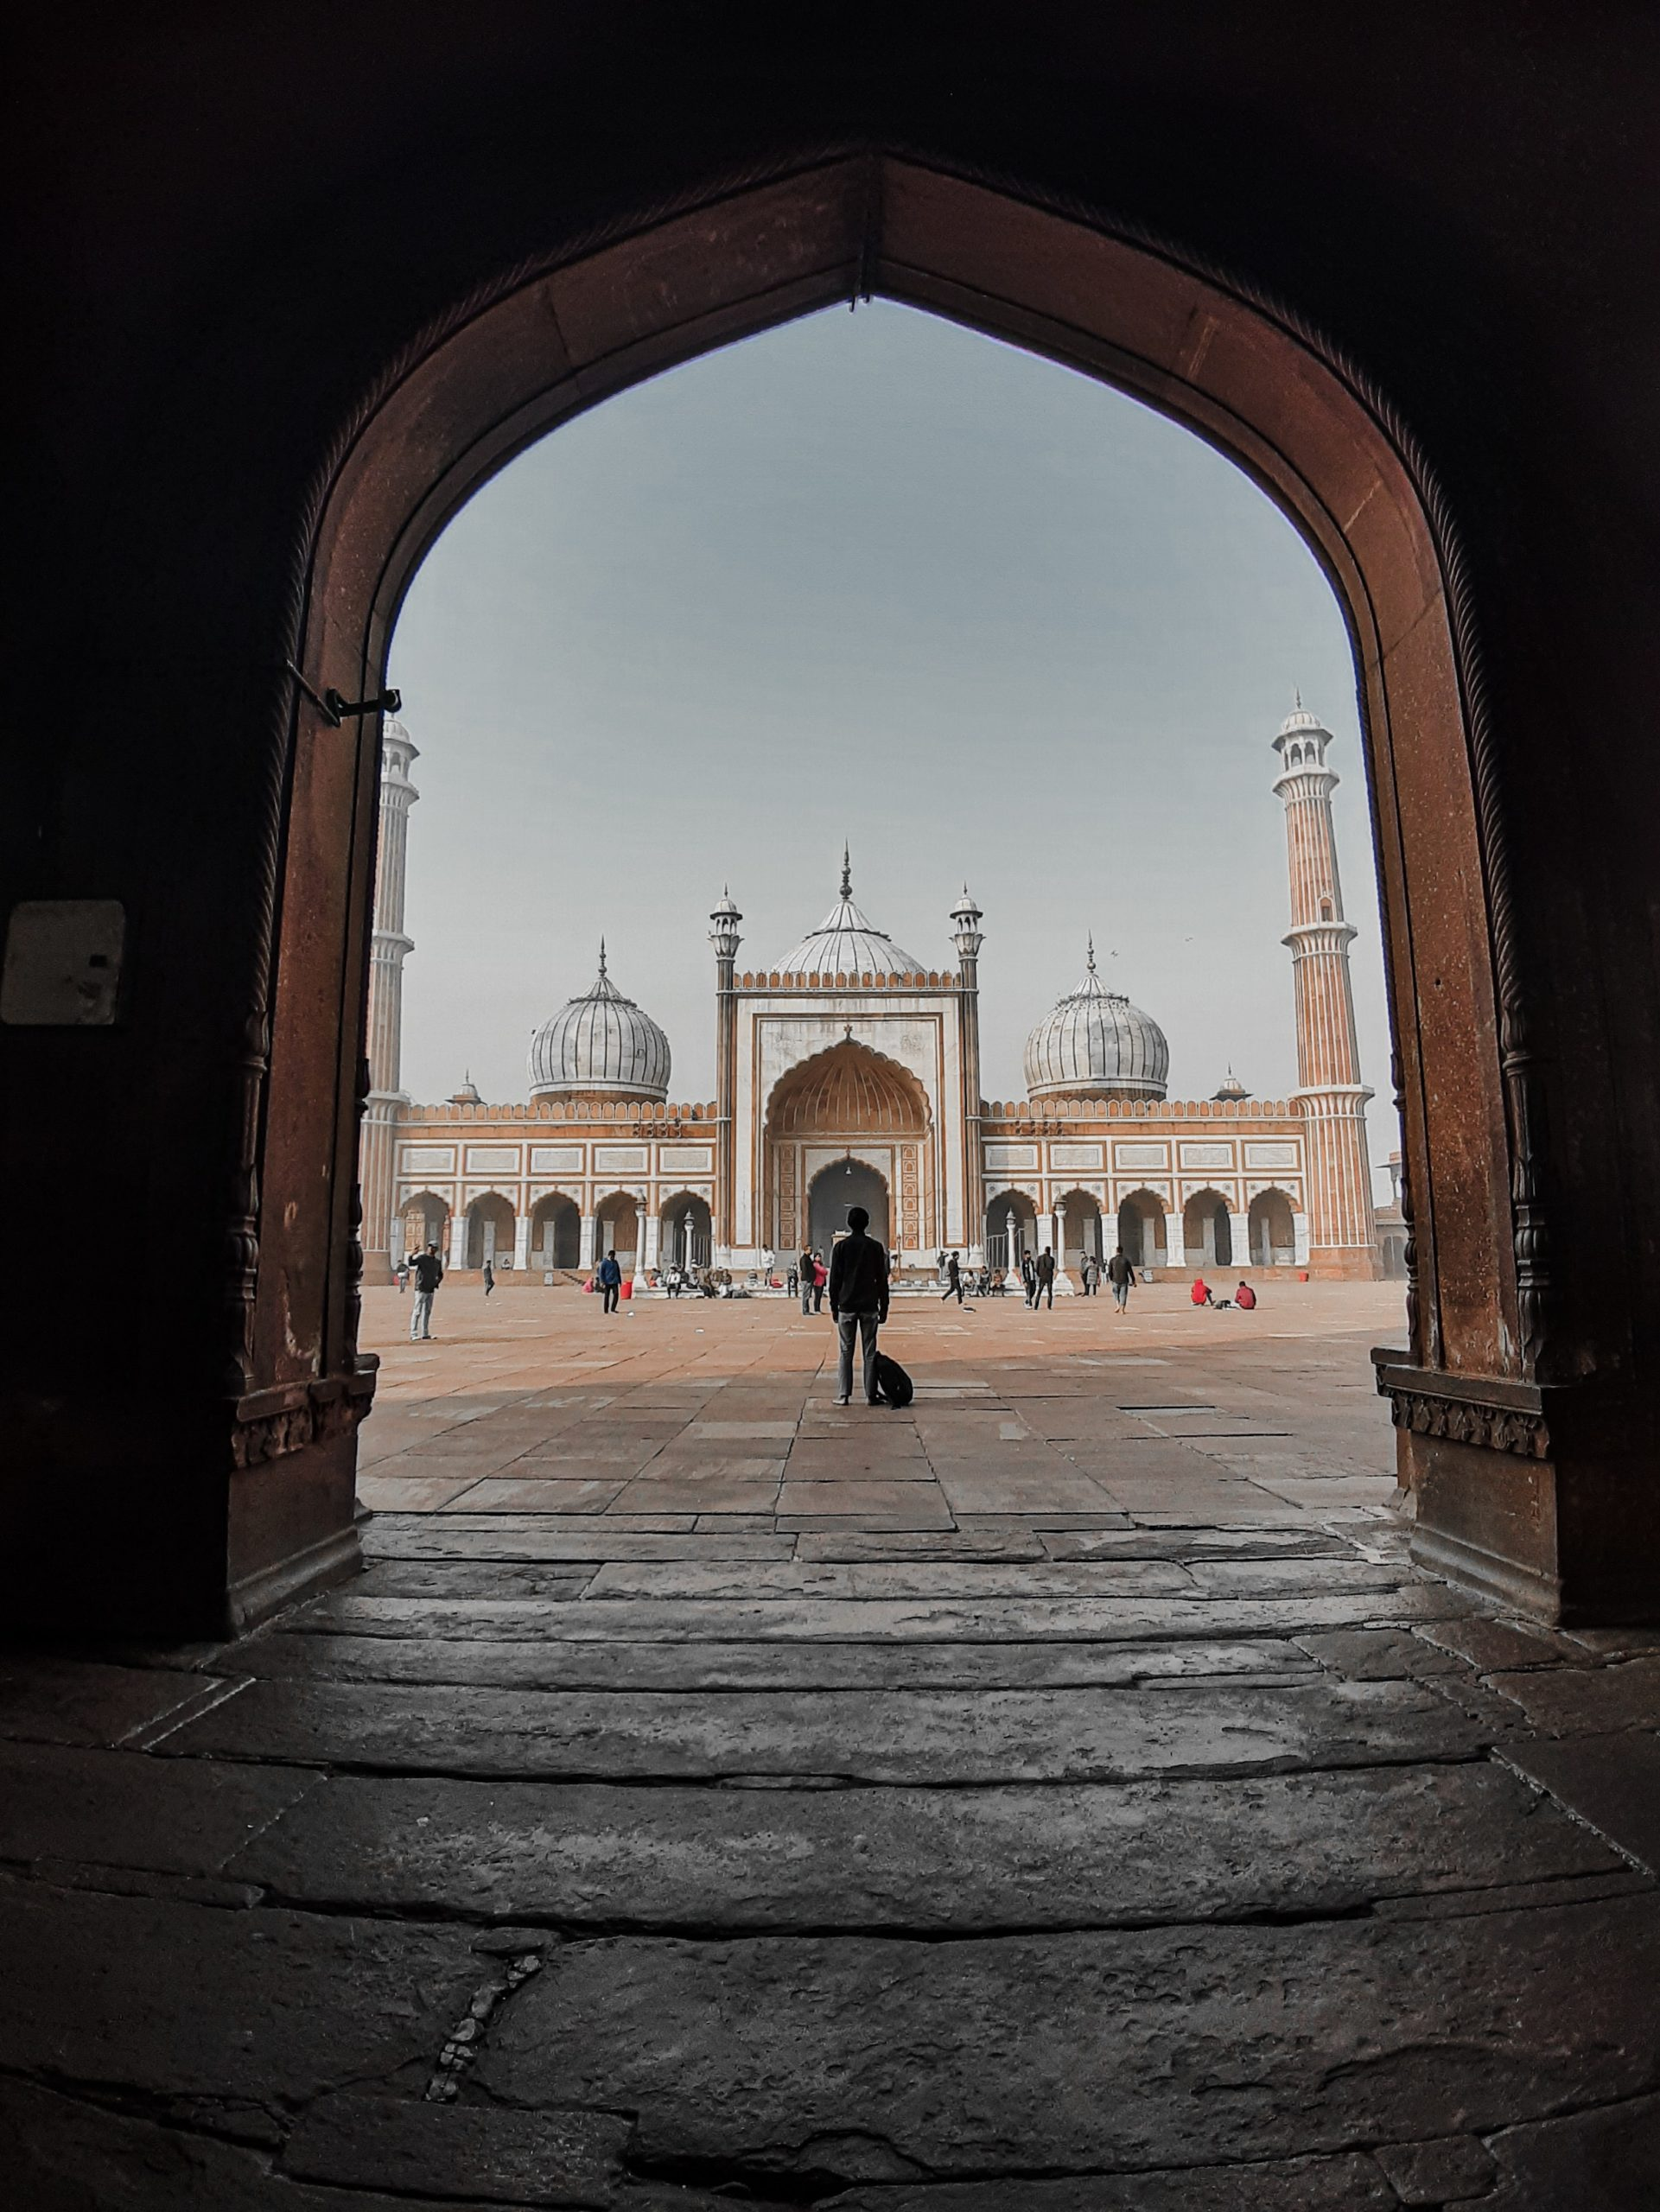 jama masjid scaled What To Do In Lockdown (II)? A Virtual Tour To 7 Spiritual Places In India